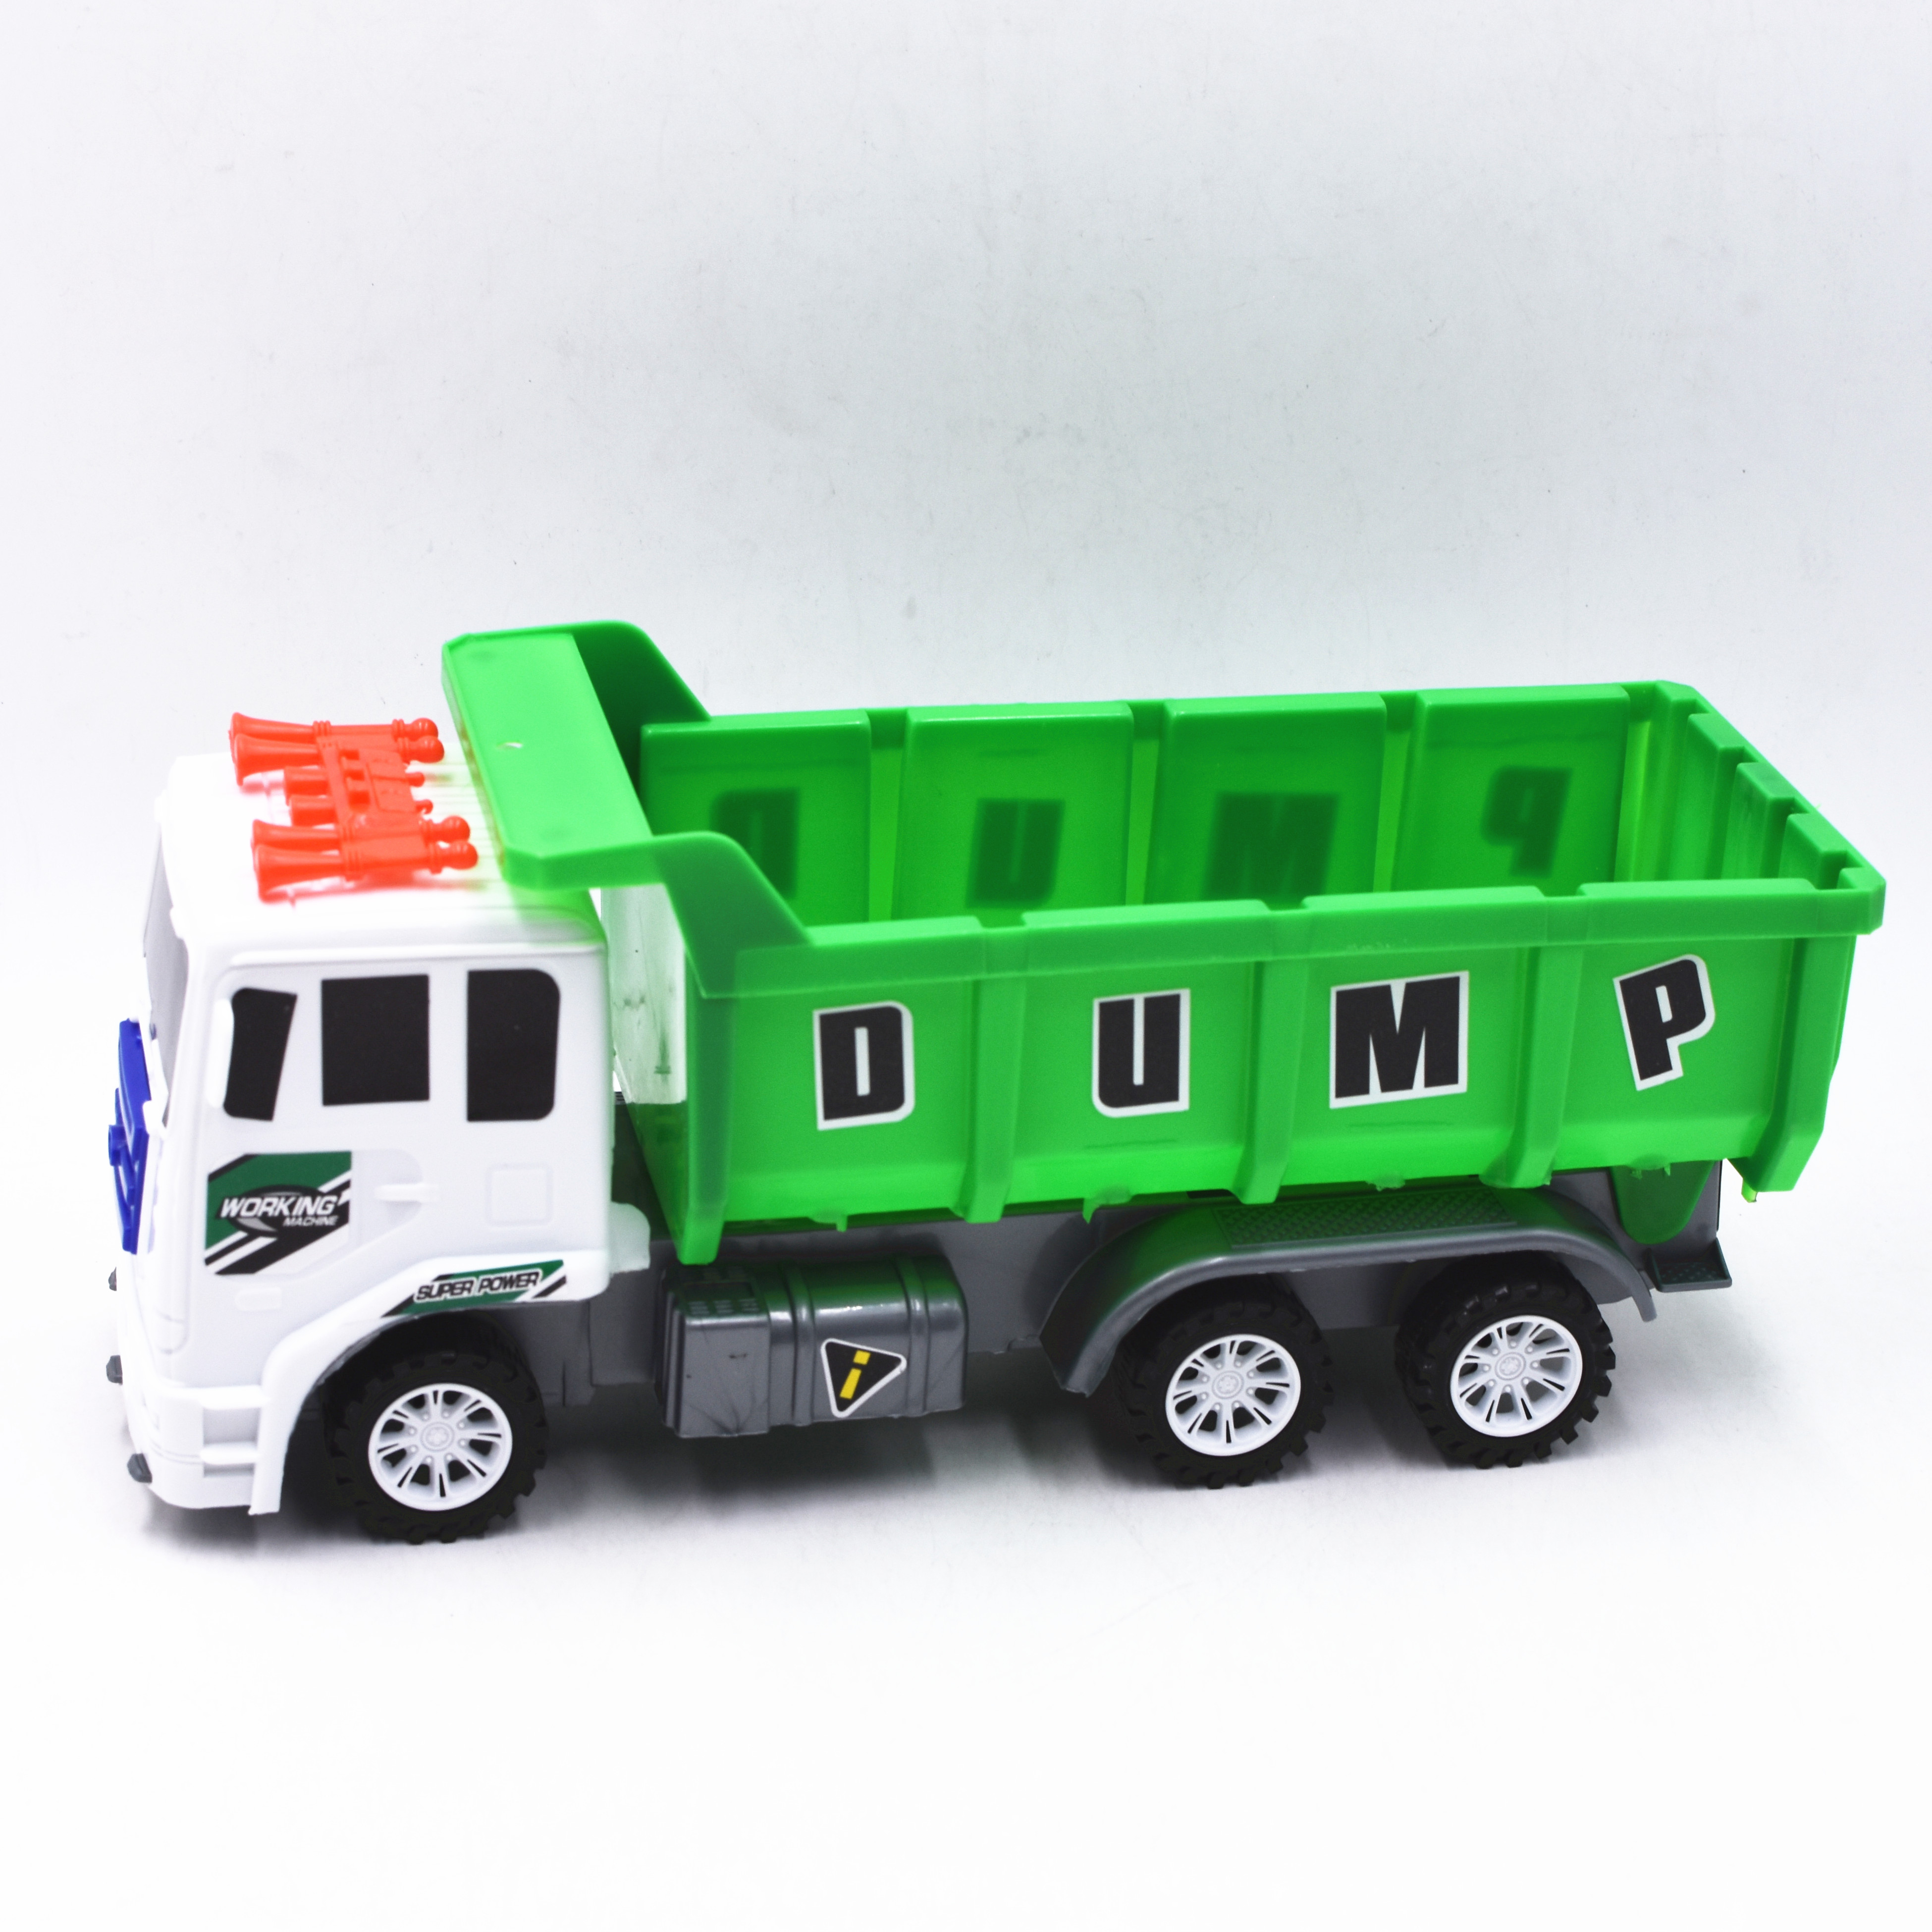 FREE WHEEL TRUCK TOY LY1753